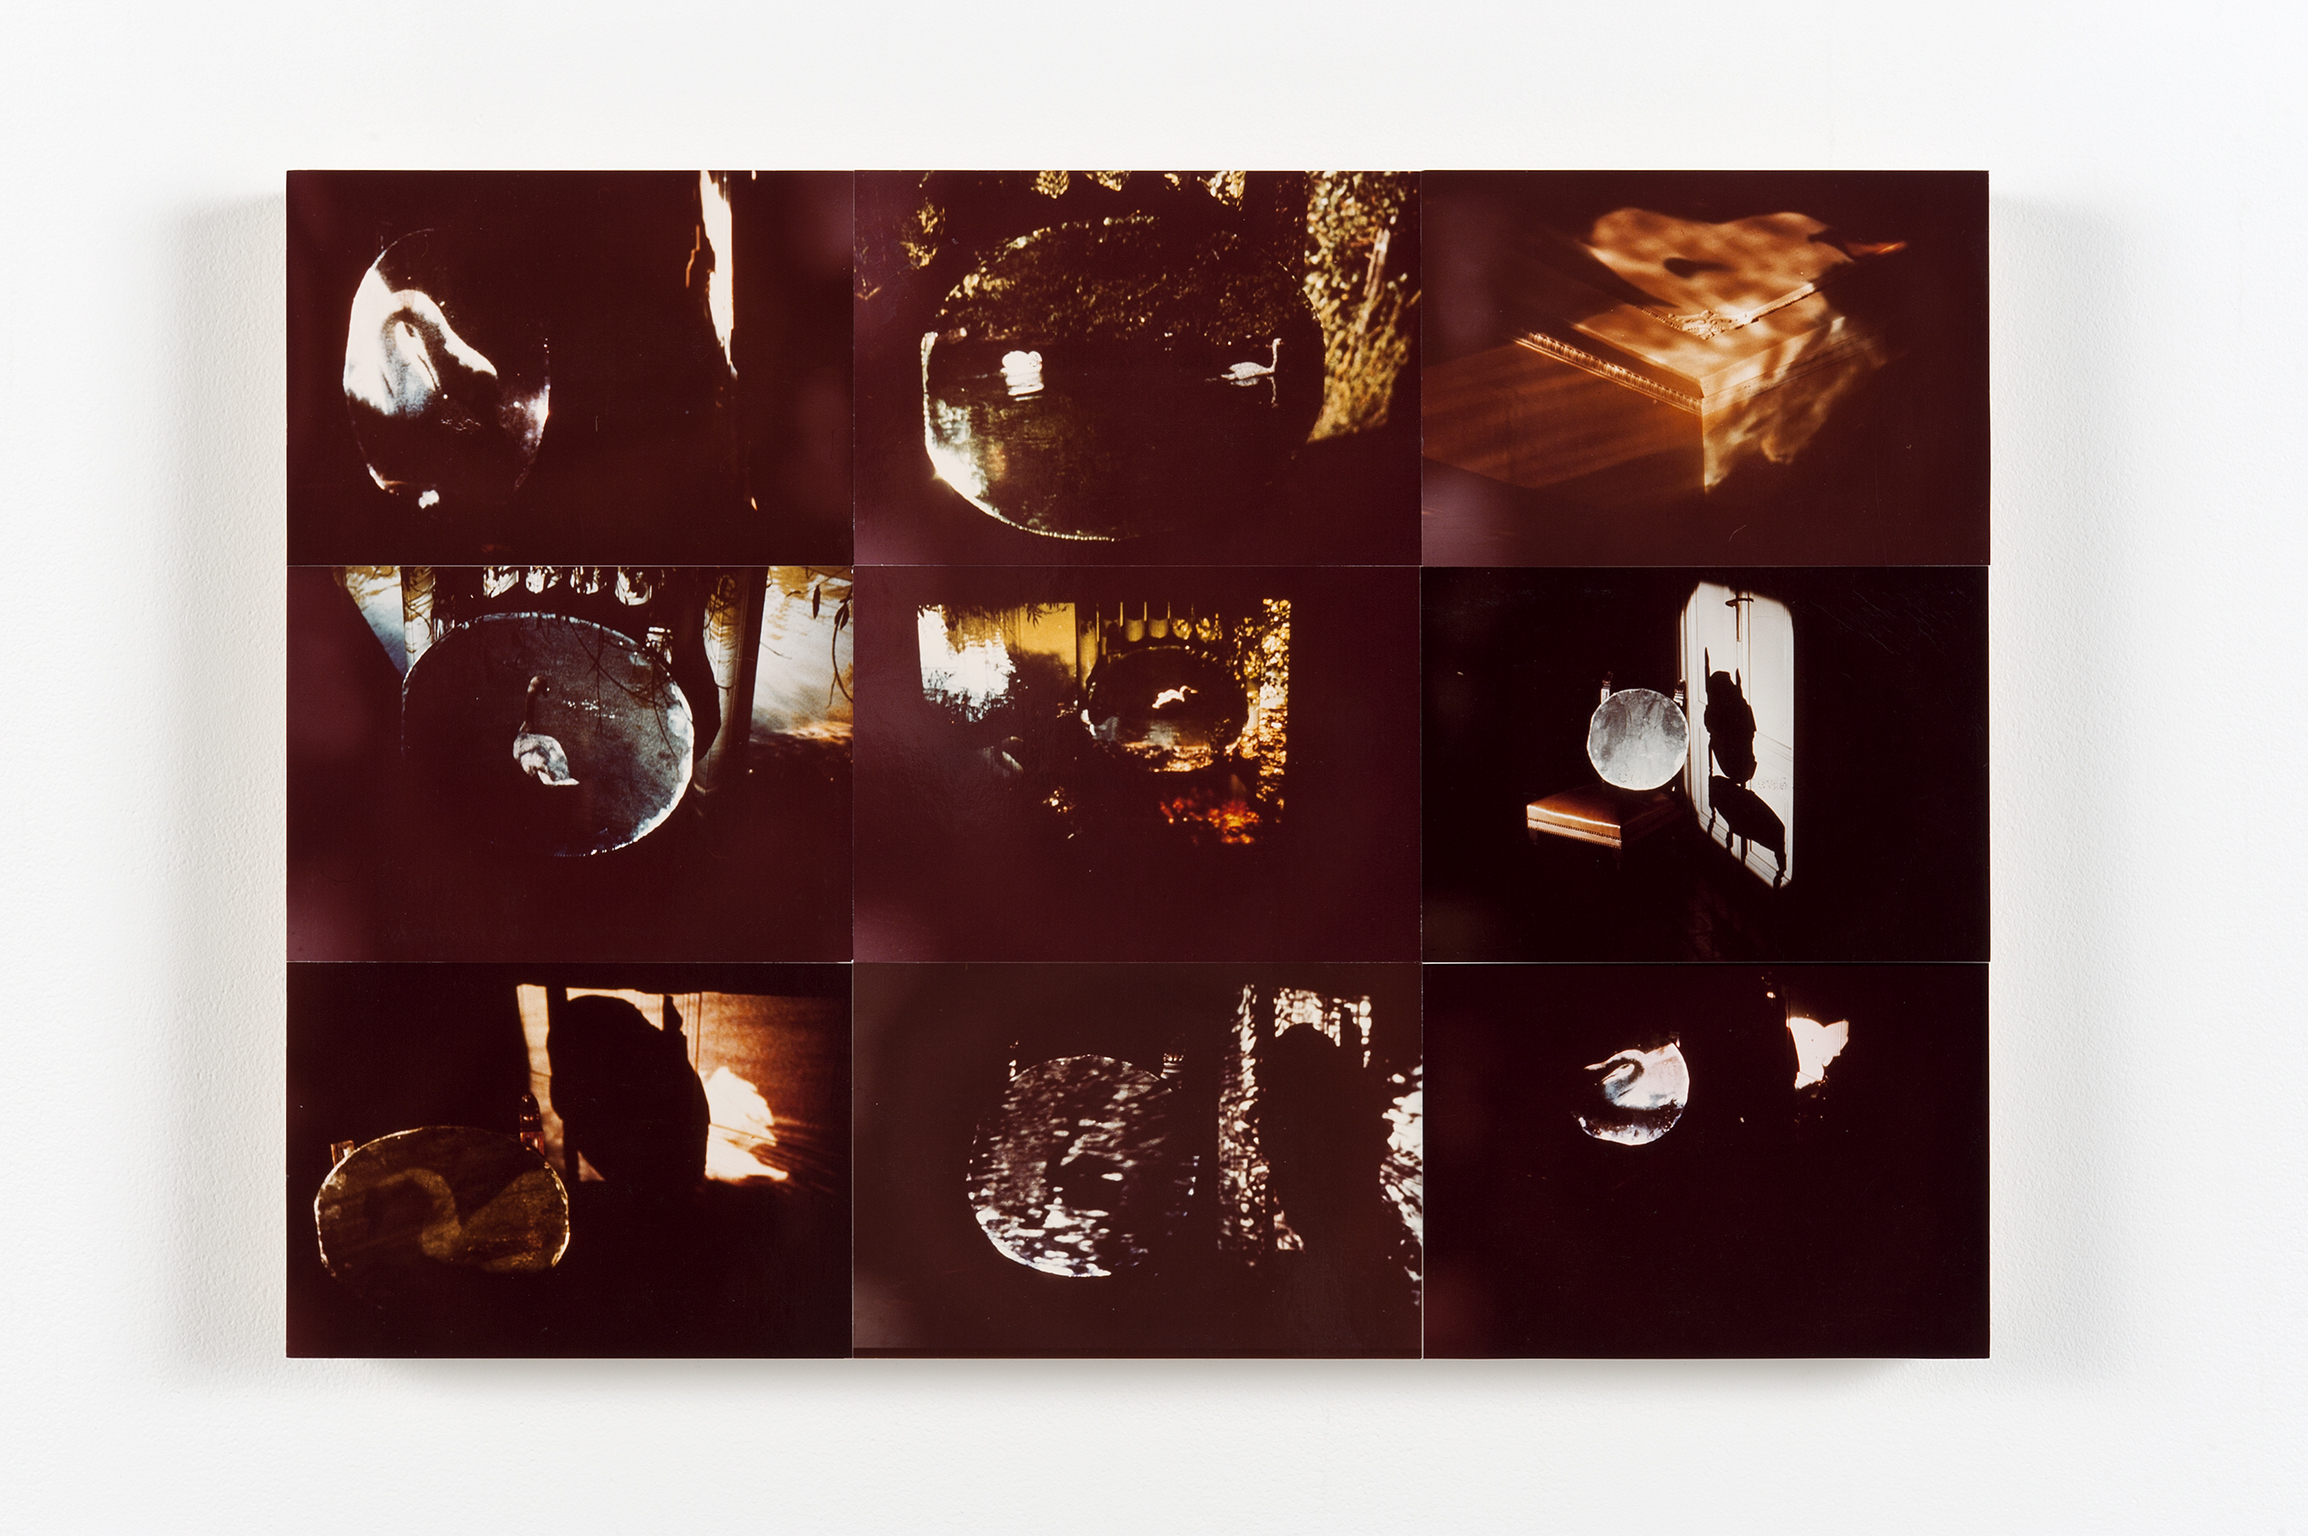 Robert Kleyn, Projections with Images of a Swan, 1977, colour photographs, 15 x 22 in. (38 x 55 cm) by